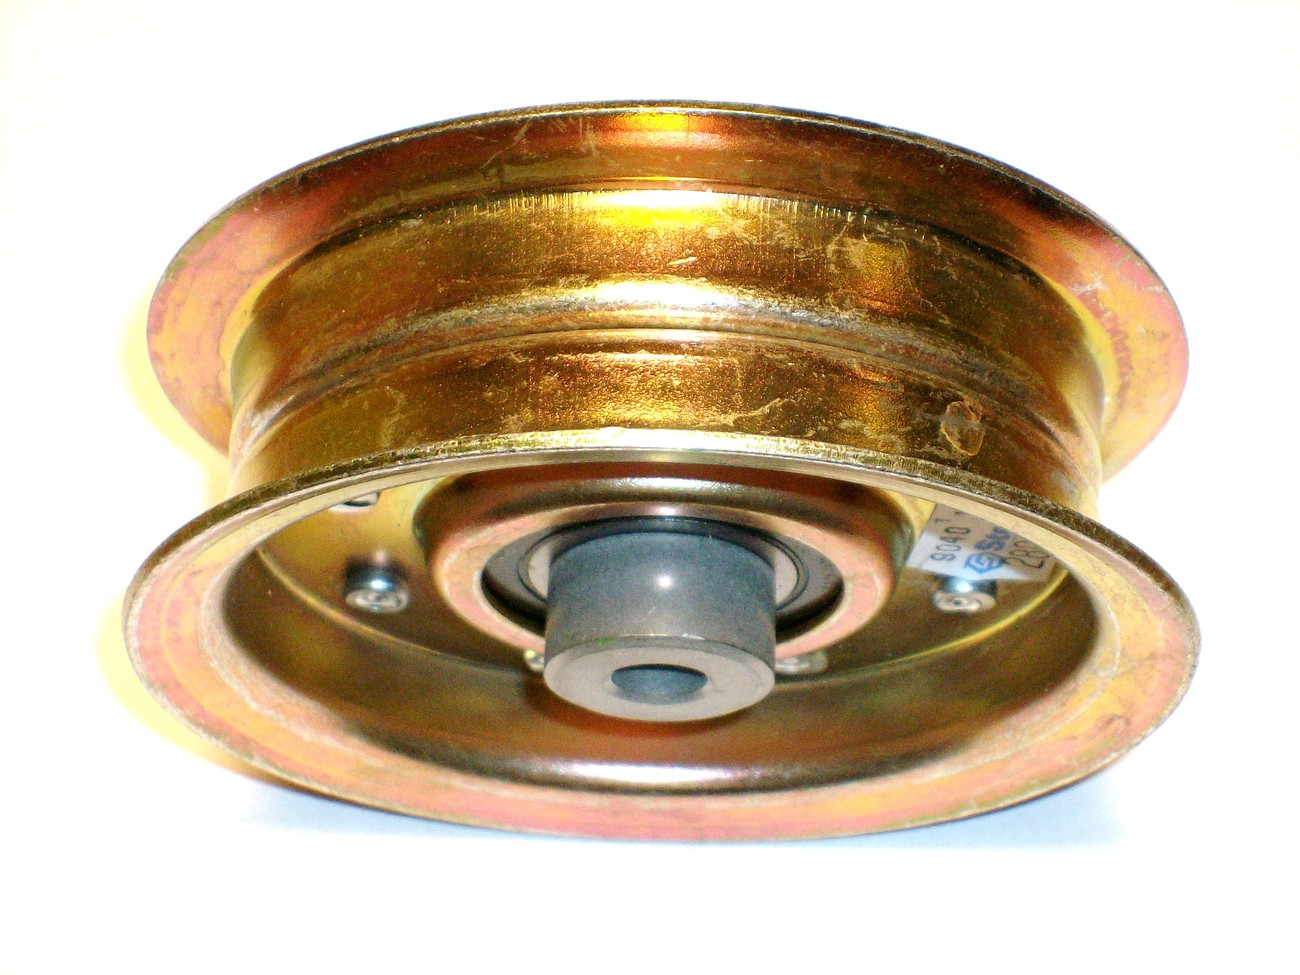 Lawn Mower Deck Pulleys : Quot cut deck idler pulley for ayp sears craftsman lawn